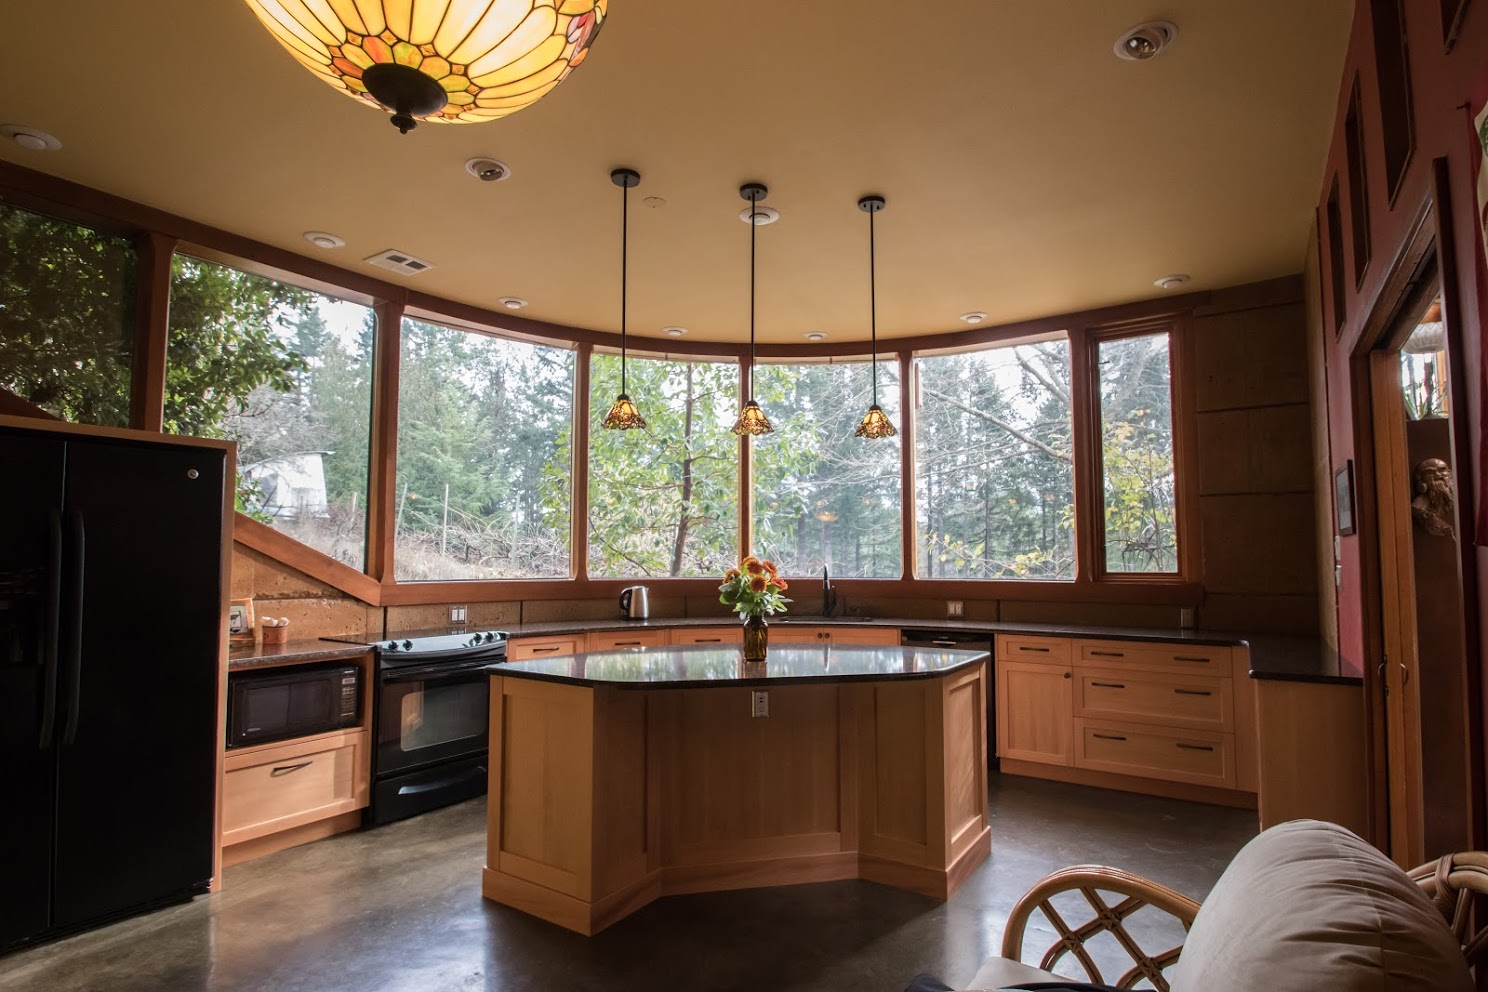 Chloe Beam & Guy Walker - (Client)Project Date: December 2018, Project Price: $10,000 - $49,999Last year, 2018, we enlisted Cowichan Woodwork to do the centre island & the cupboards & counters in our kitchen and pantry. Jen was our design consultant on the project.It was not a straightforward job as the counter of our kitchen is along a rounded wall.From the beginning, Jen approached the job with confidence, and skillful attention to detail. We found she listened well to our desires and yet when we were indecisive, she would step up and offer advice and alternatives. We learned to trust her wisdom and yet we always felt creatively involved in the project. There were times when quick decisions had to be made, and she was readily available, patient and helpfully involved.We pushed the deadline towards the end, an important family event was approaching, and Jen made the kitchen all come together on time. So yes, our experience working with Cowichan Woodwork and Jen is very positive and I might also add, the cupboards and counters are beautifully well crafted.